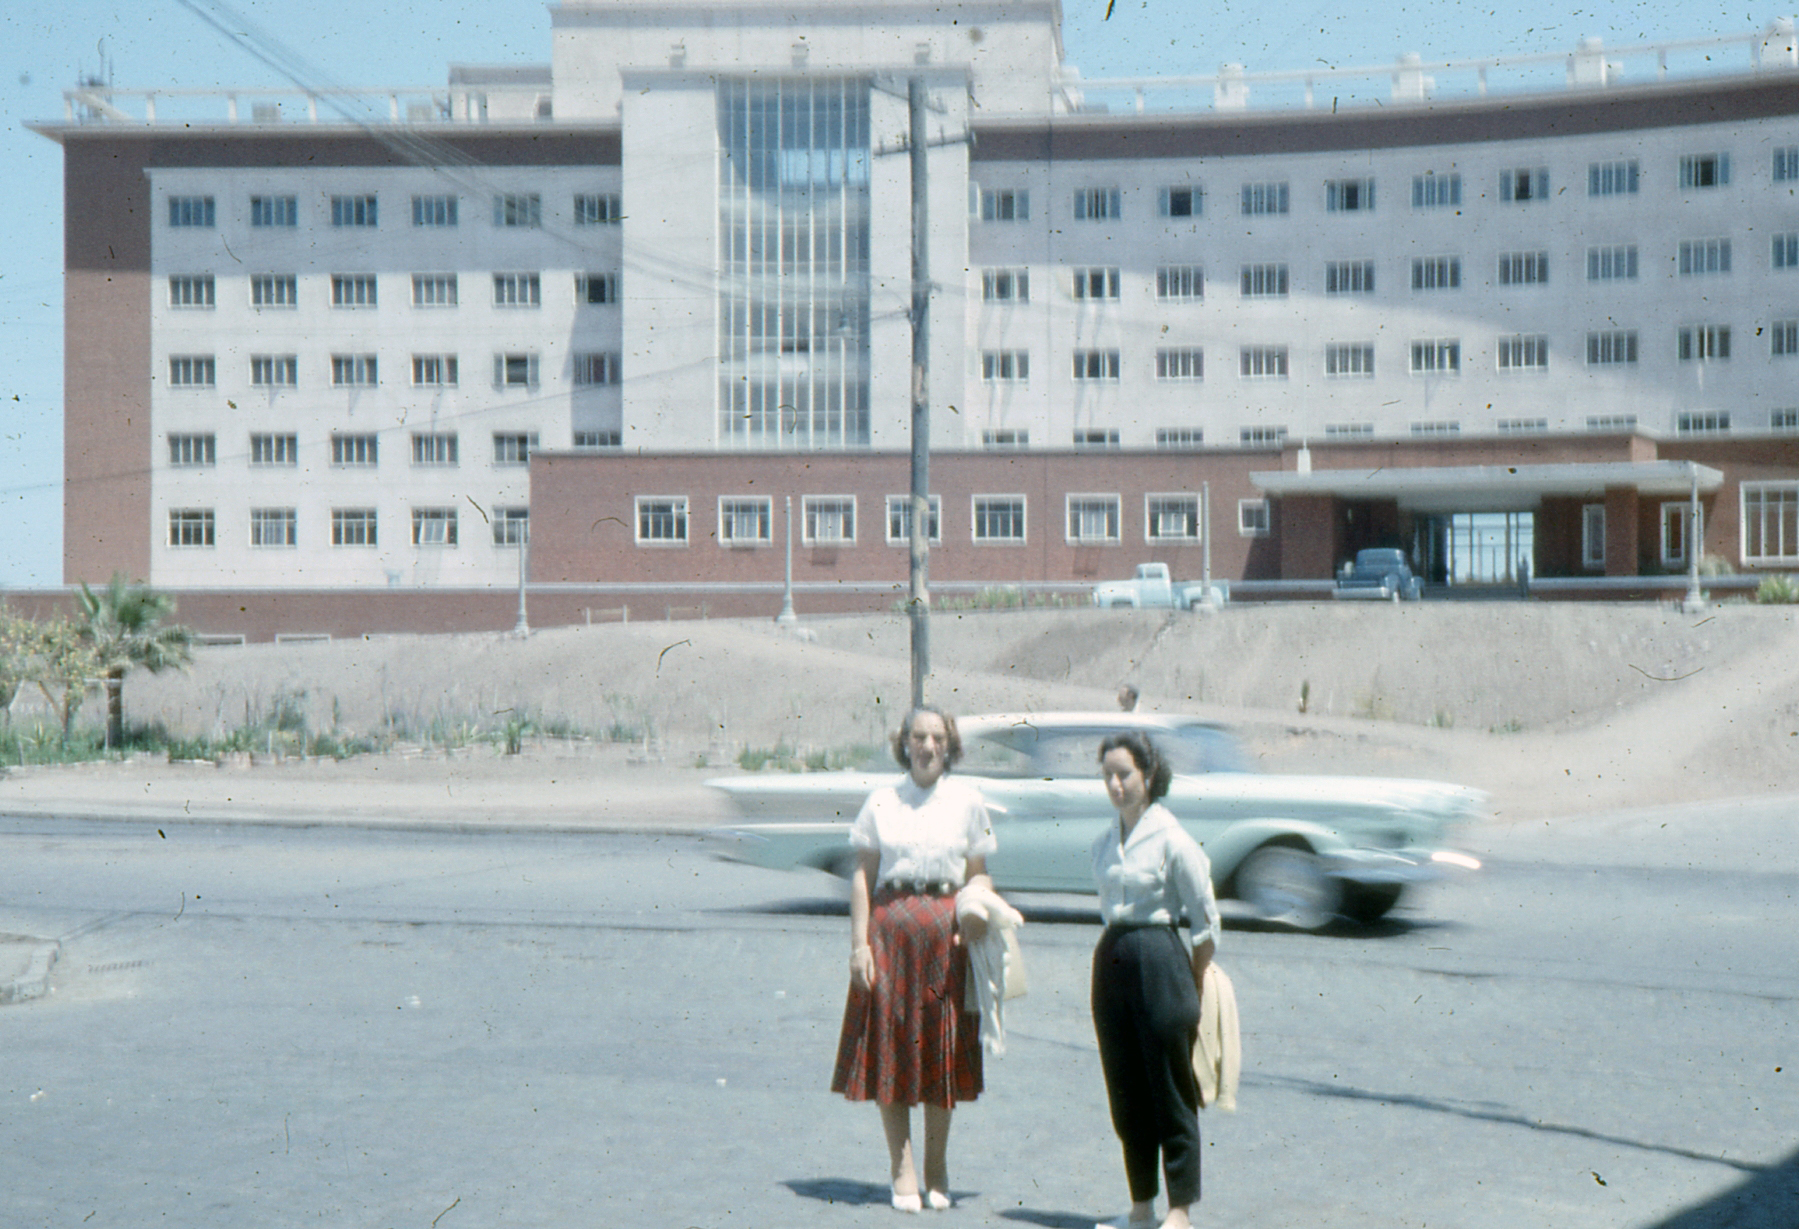 Enterreno - Fotos históricas de chile - fotos antiguas de Chile - Antofagasta Hotel en 1958